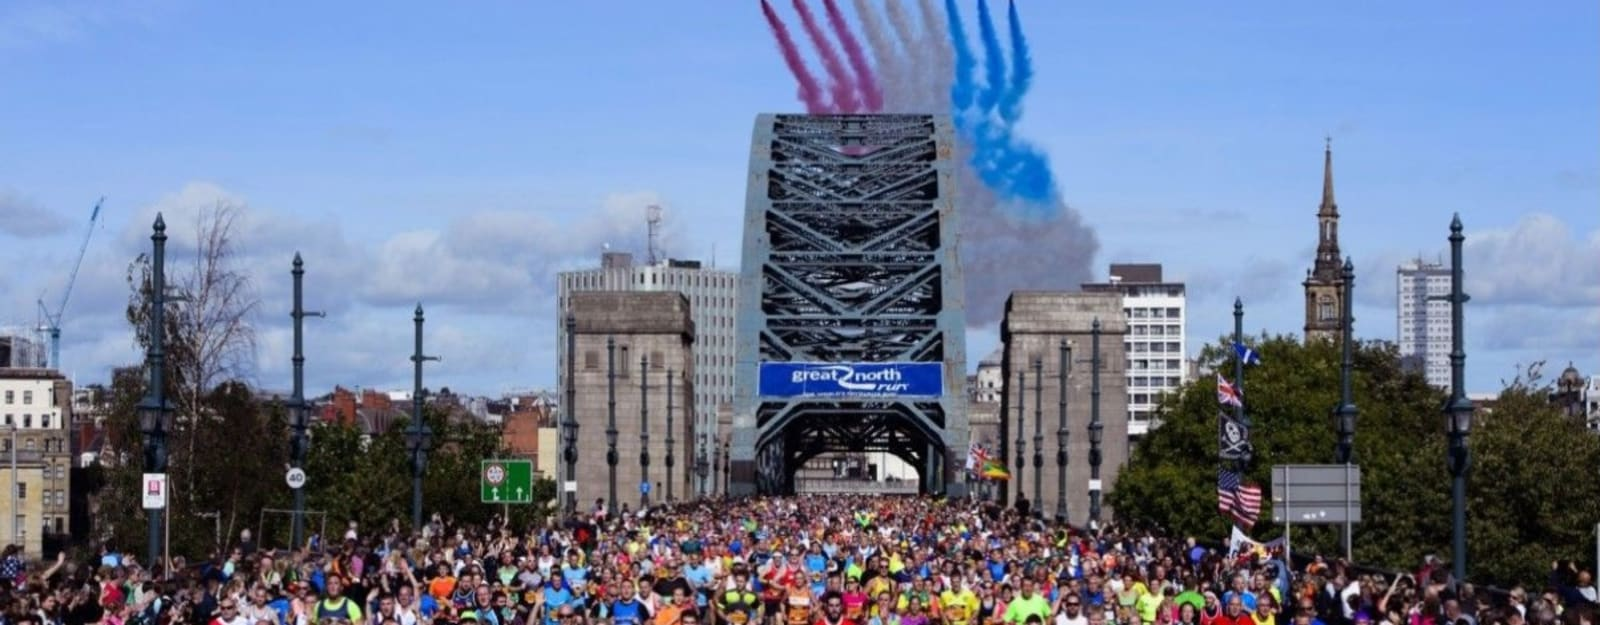 Ant's Almost Great North Run fundraising for Carers Trust Tyne and Wear